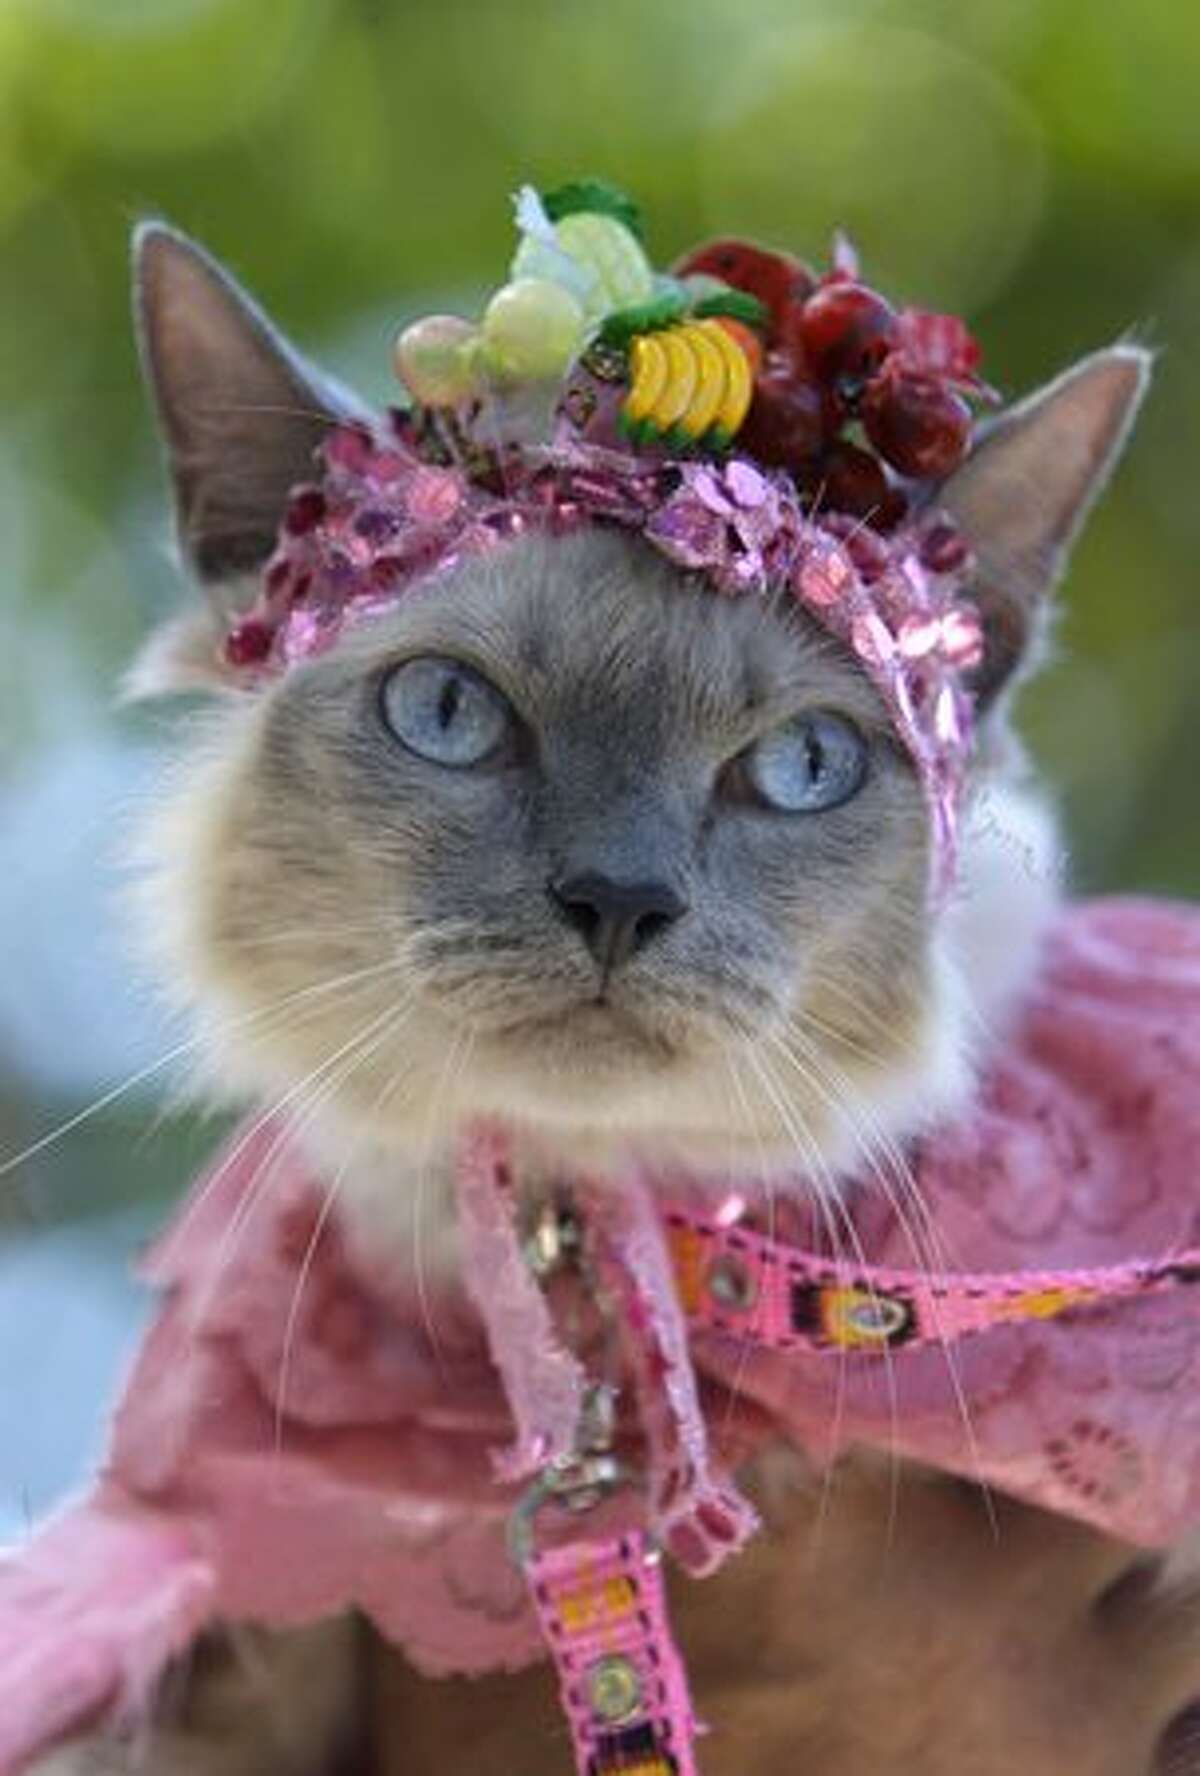 A cat dressed like famous singer Carmen Miranda is seen during the dog street carnival parade in Rio de Janeiro, Sunday, Feb. 7. Hundreds gathered in the streets during one of the many parades before Carnival, which runs Feb. 12-16. (AP Photo/Silvia Izquierdo)